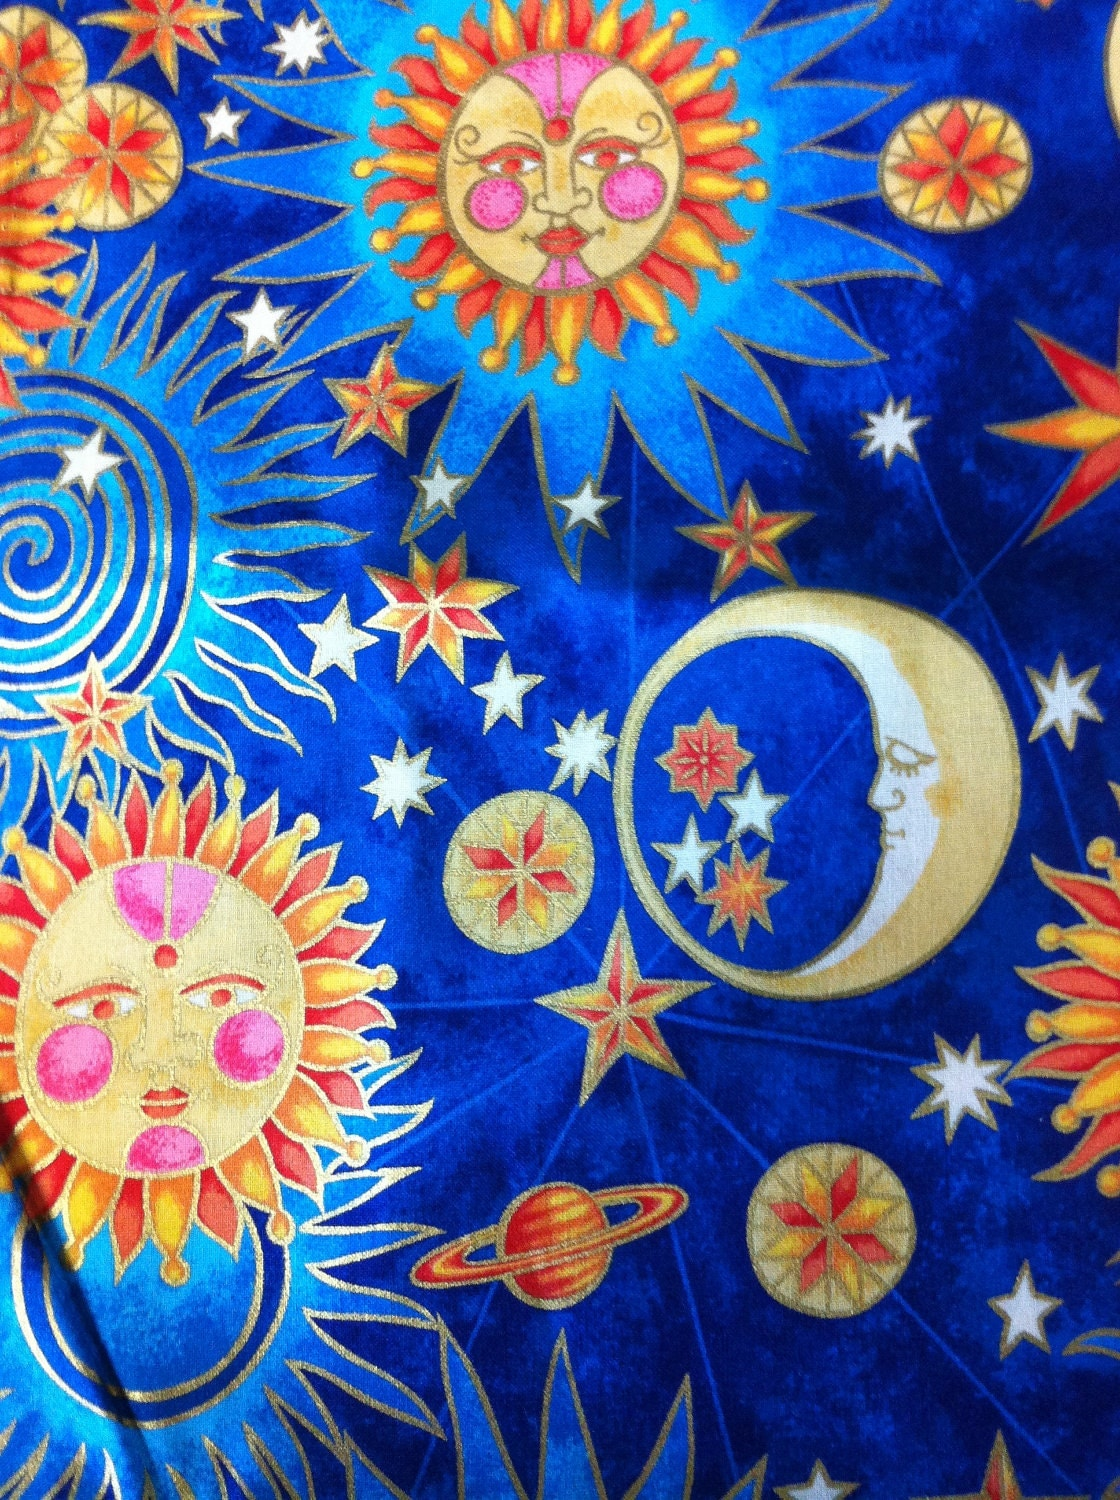 Celestial sun moon stars planet cotton fabric for Sun moon fabric